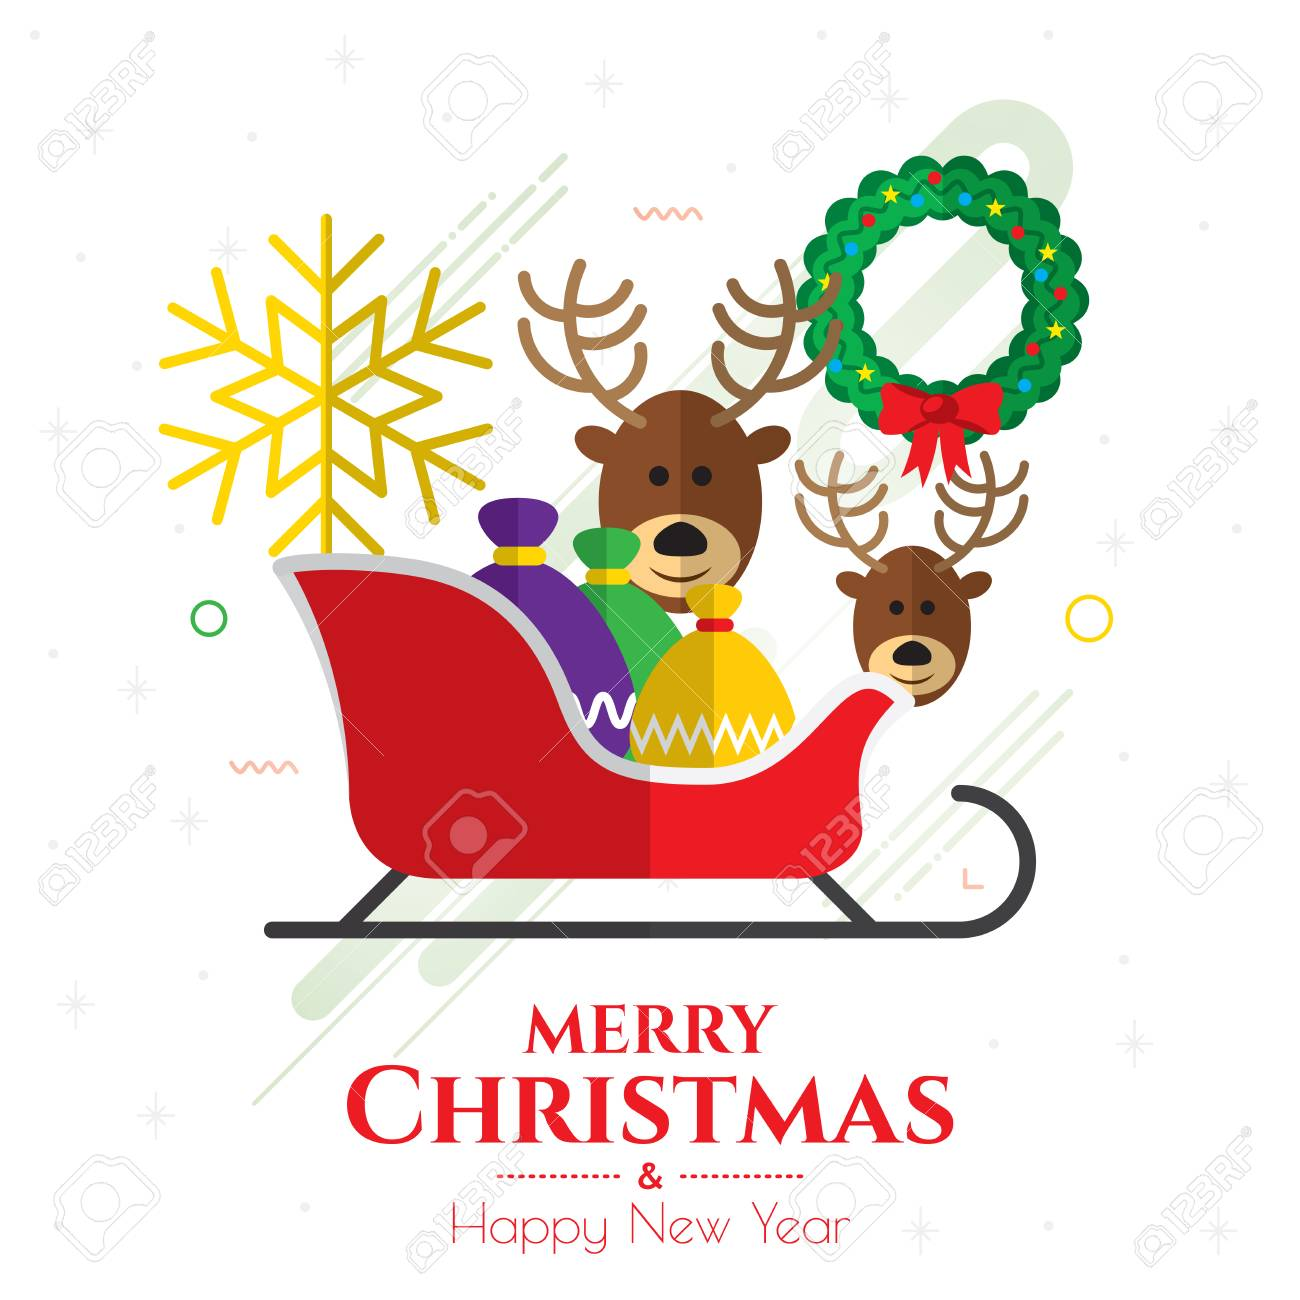 merry christmas and happy new year banner stock vector 91463212